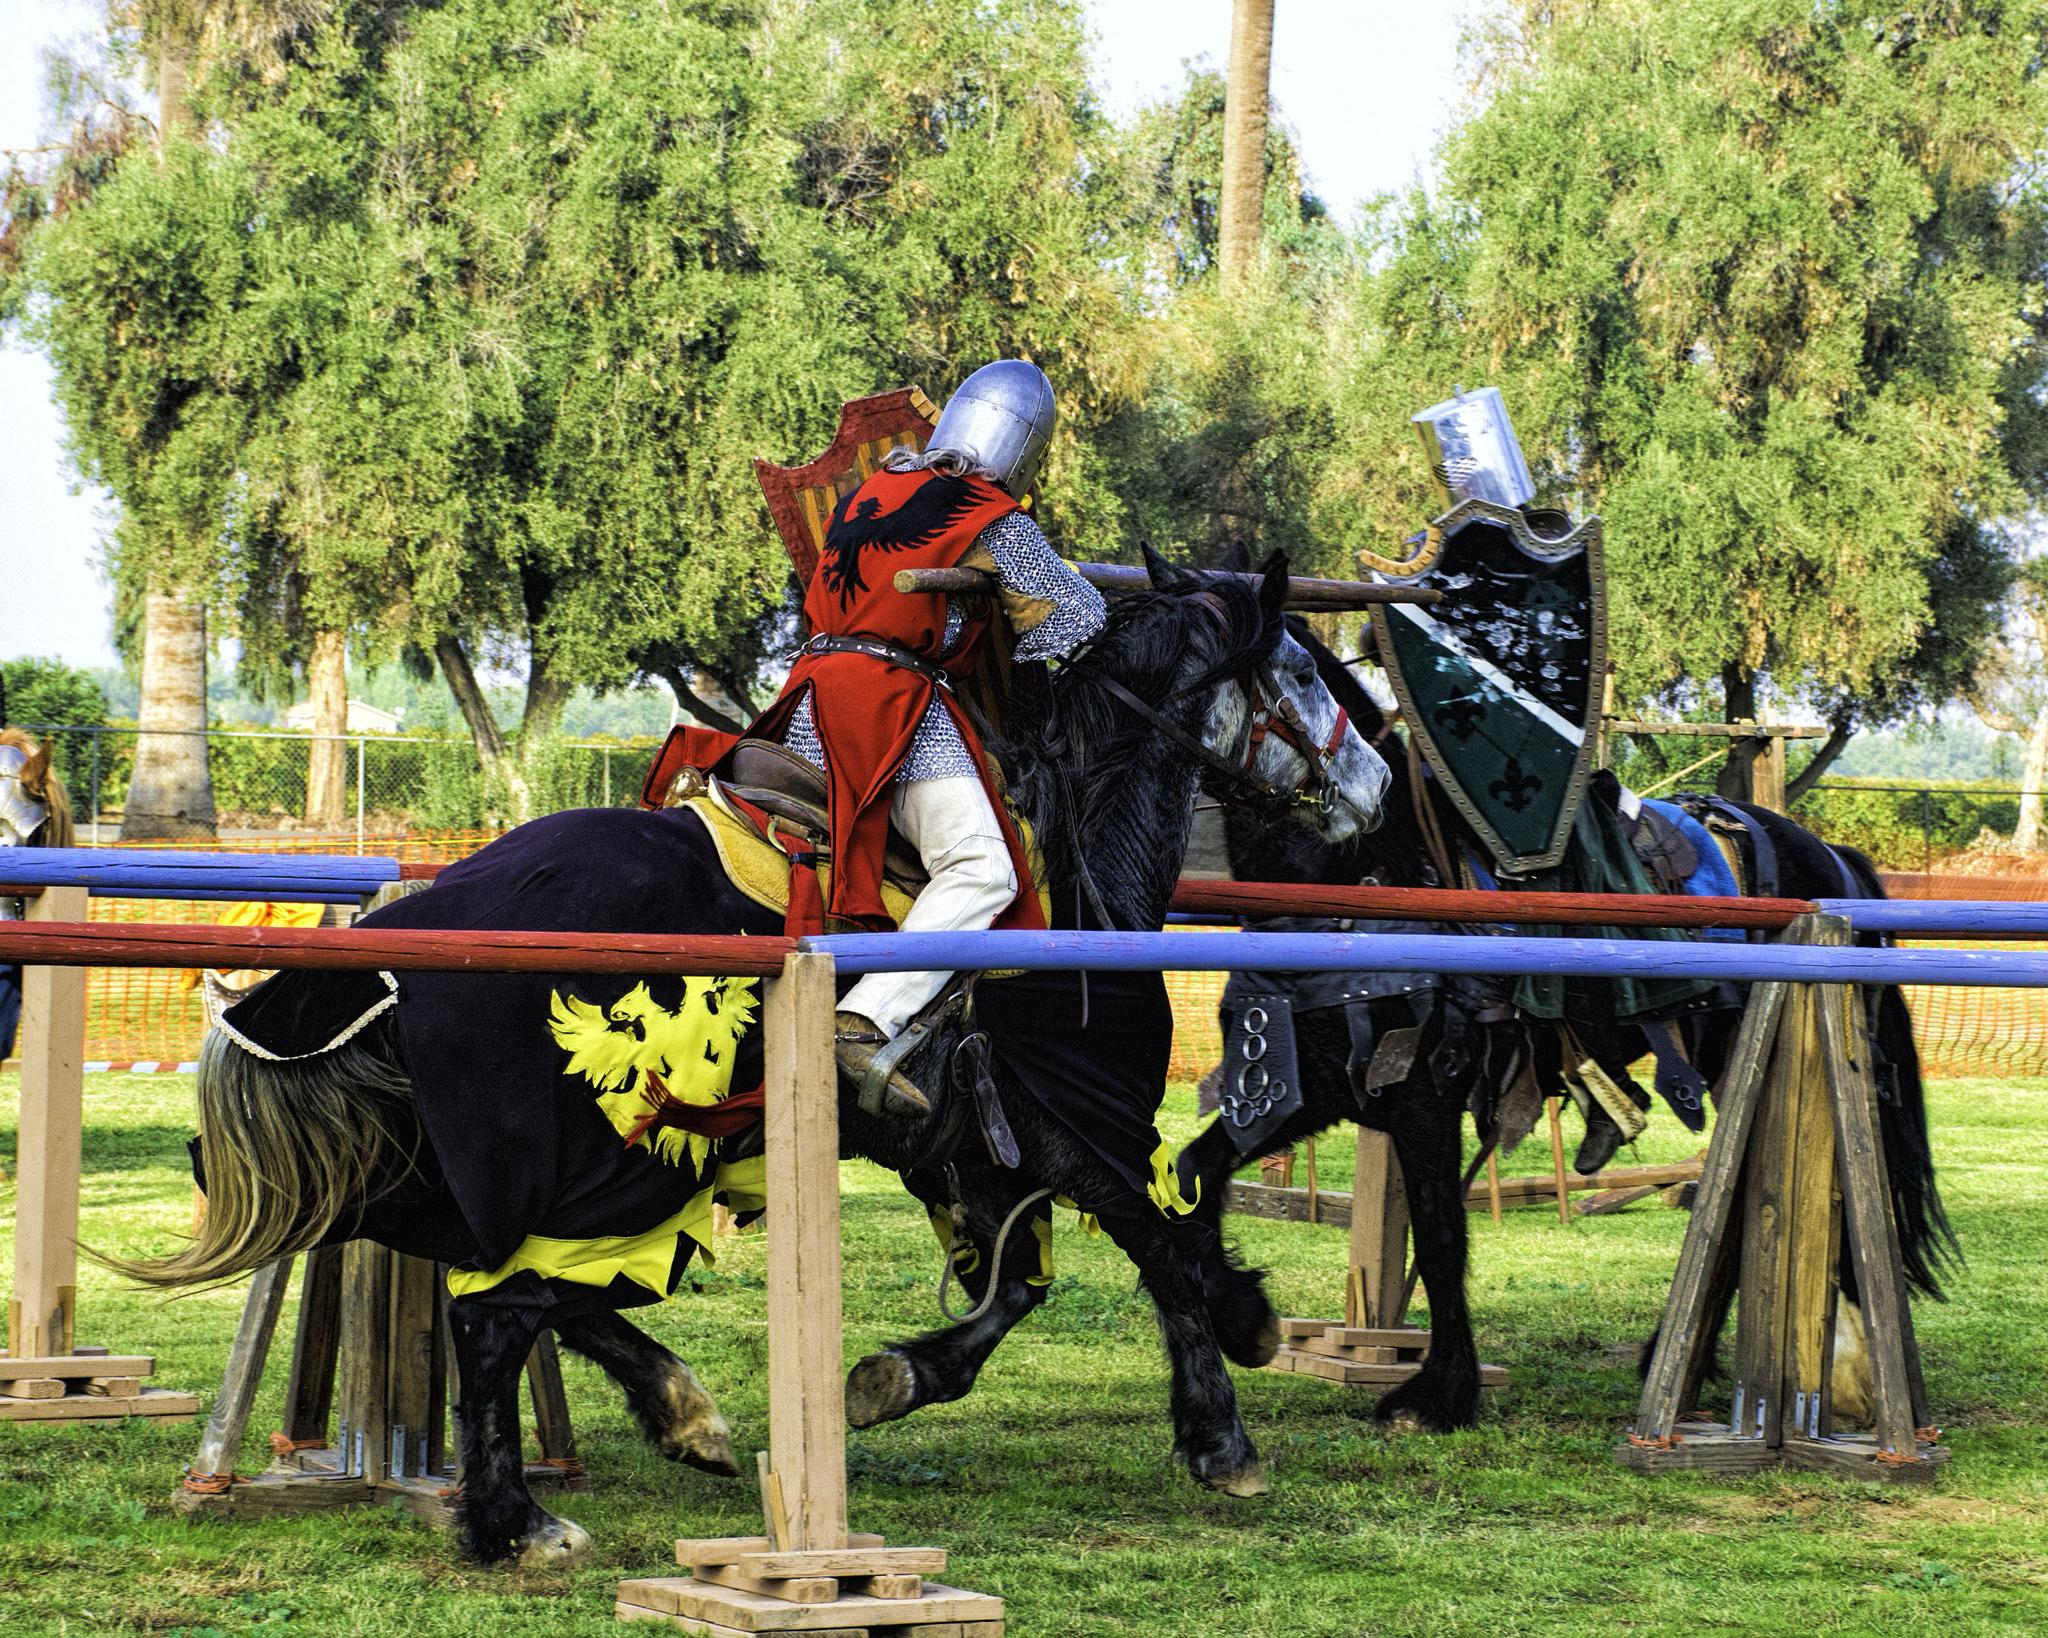 The Joust by steve jordan